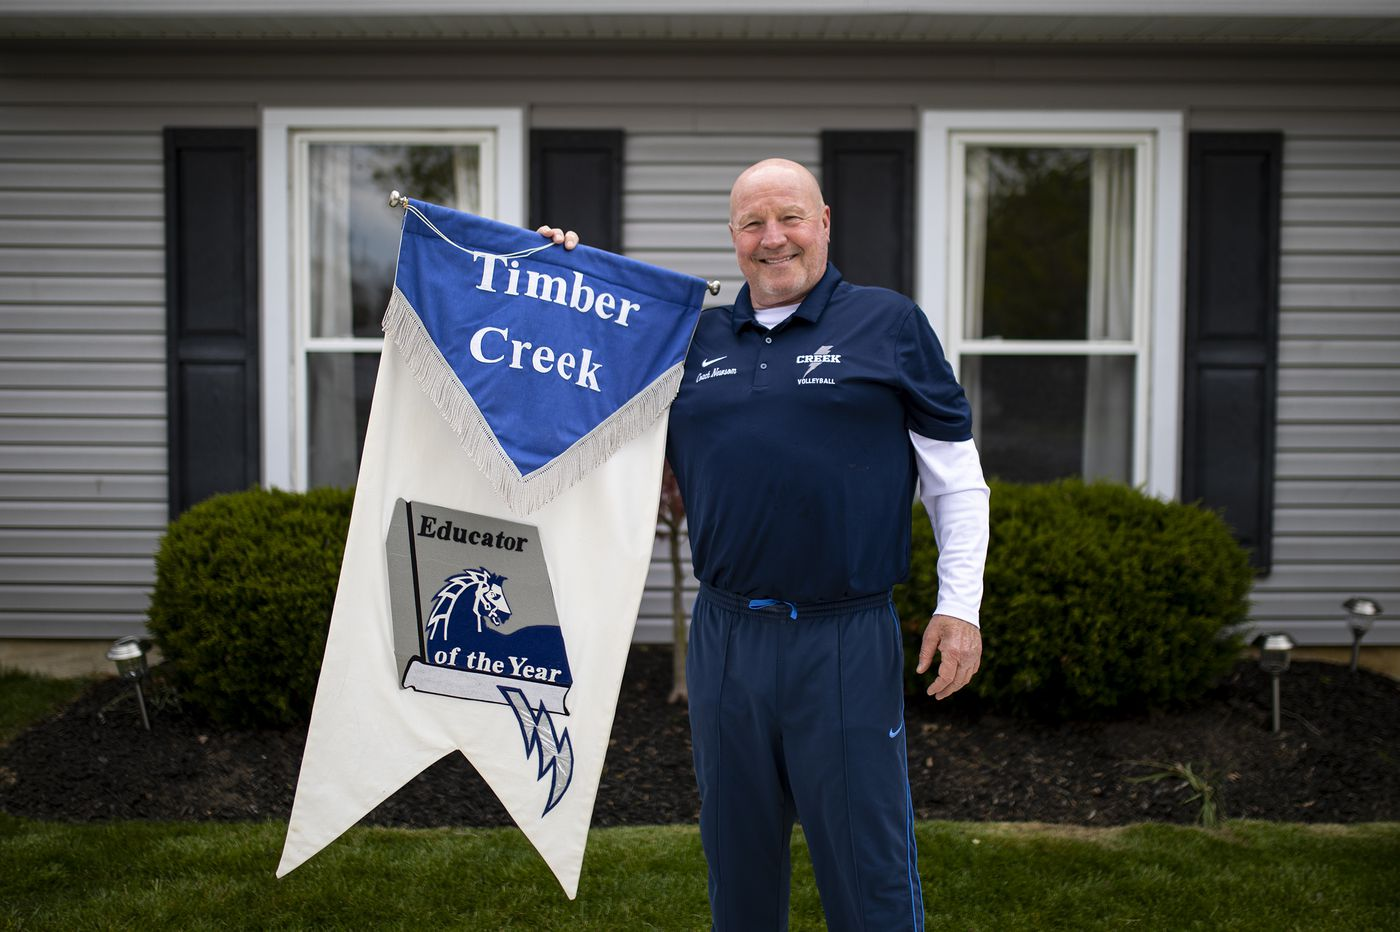 Right on time, Chuck Newsom is Timber Creek High's Educator of the Year